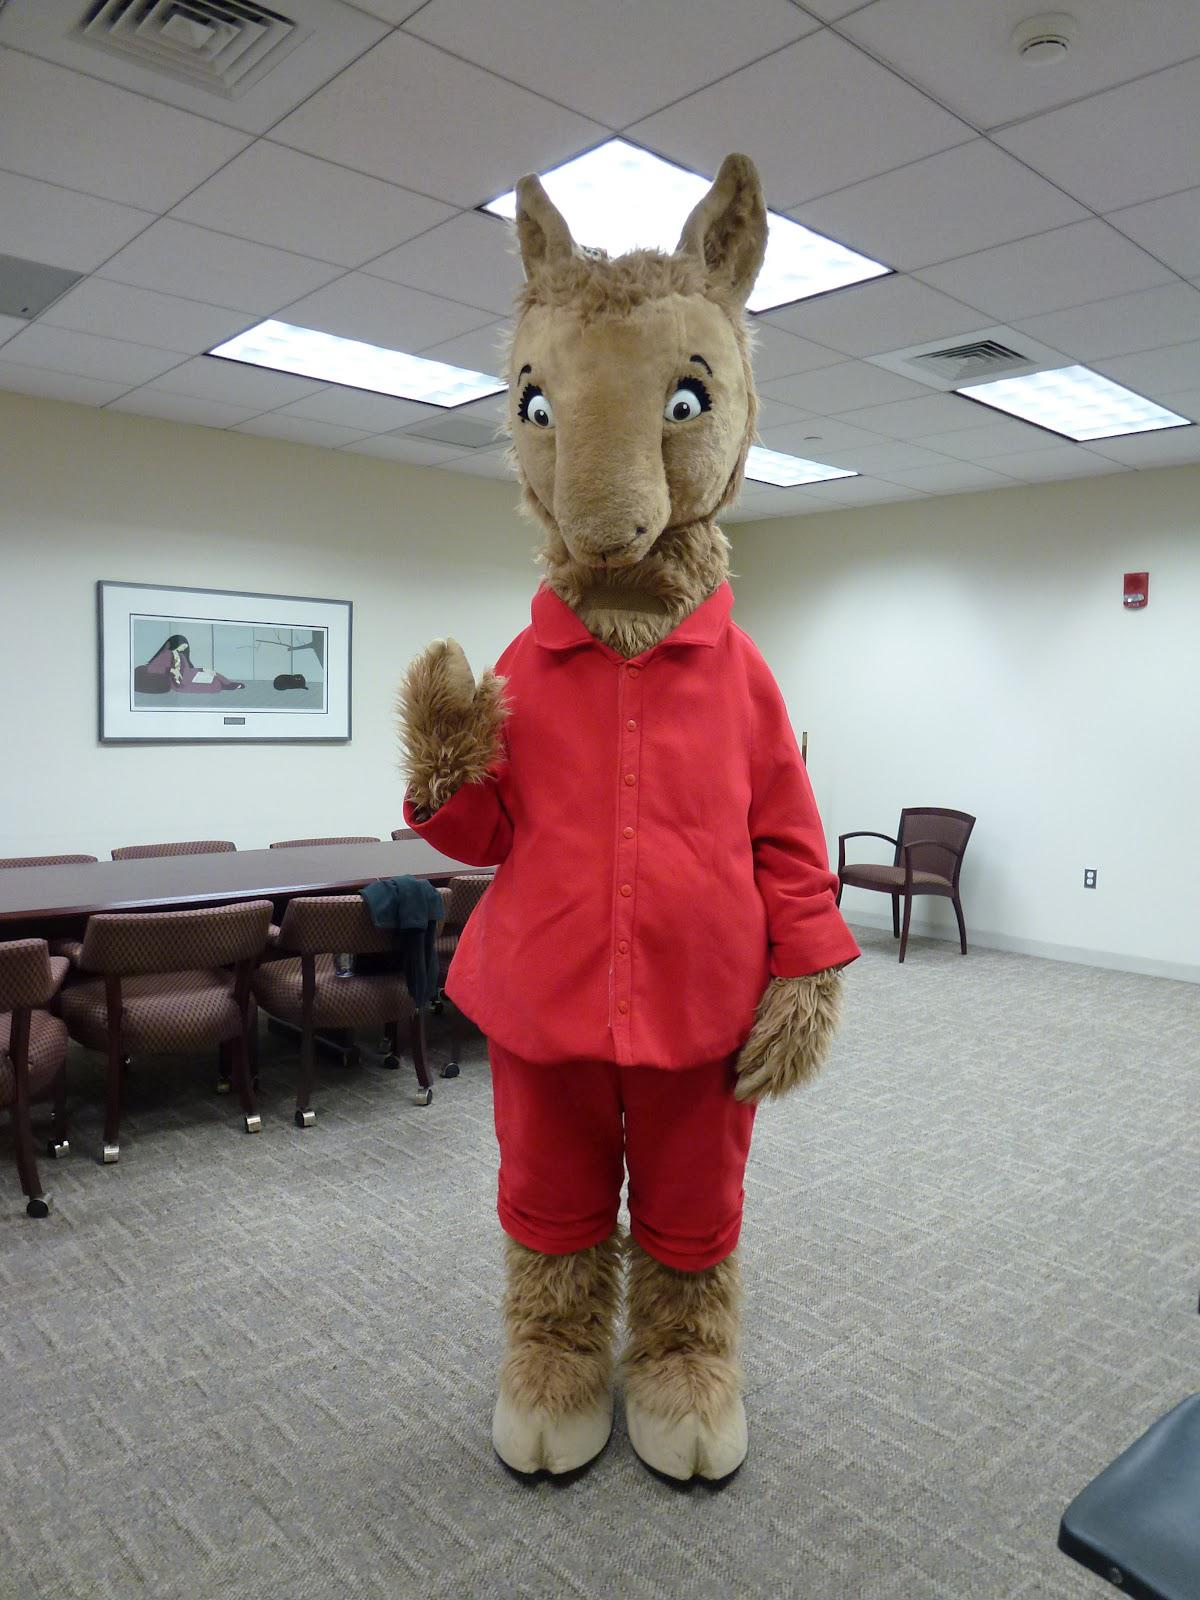 Llama Llama Red Pajama Mascot Costume for Halloween christmas Party Costume  Character Outfit Fancy dress